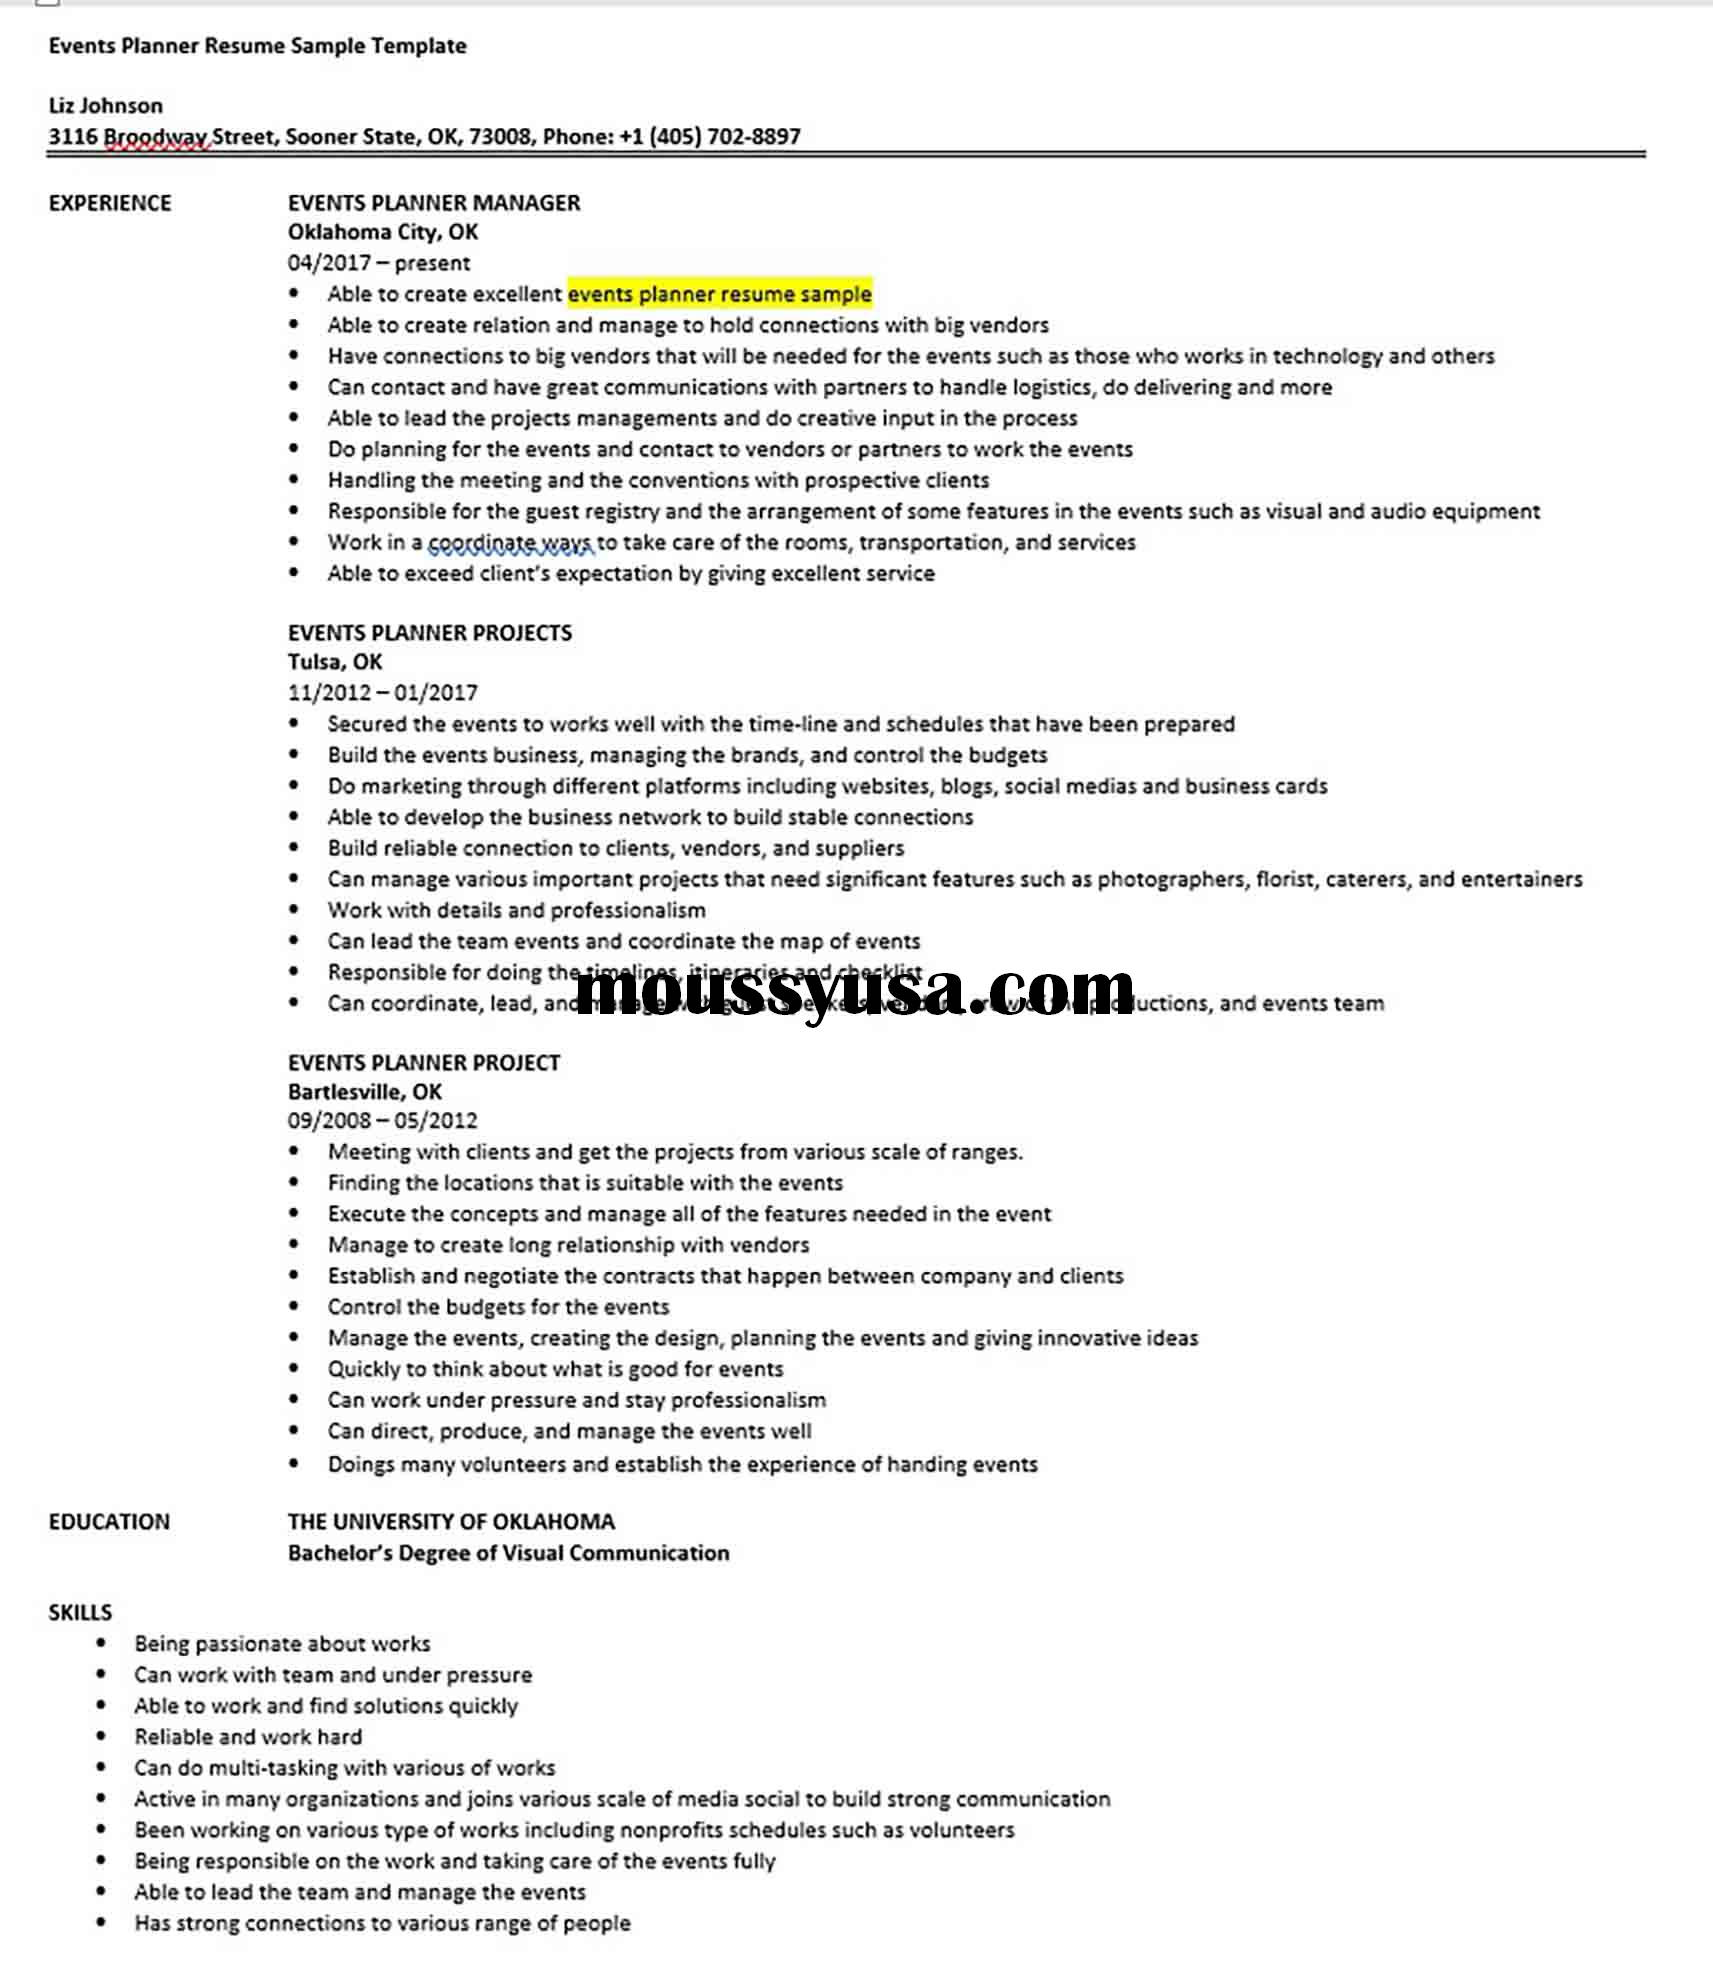 Events Planner Resume Sample Template 1